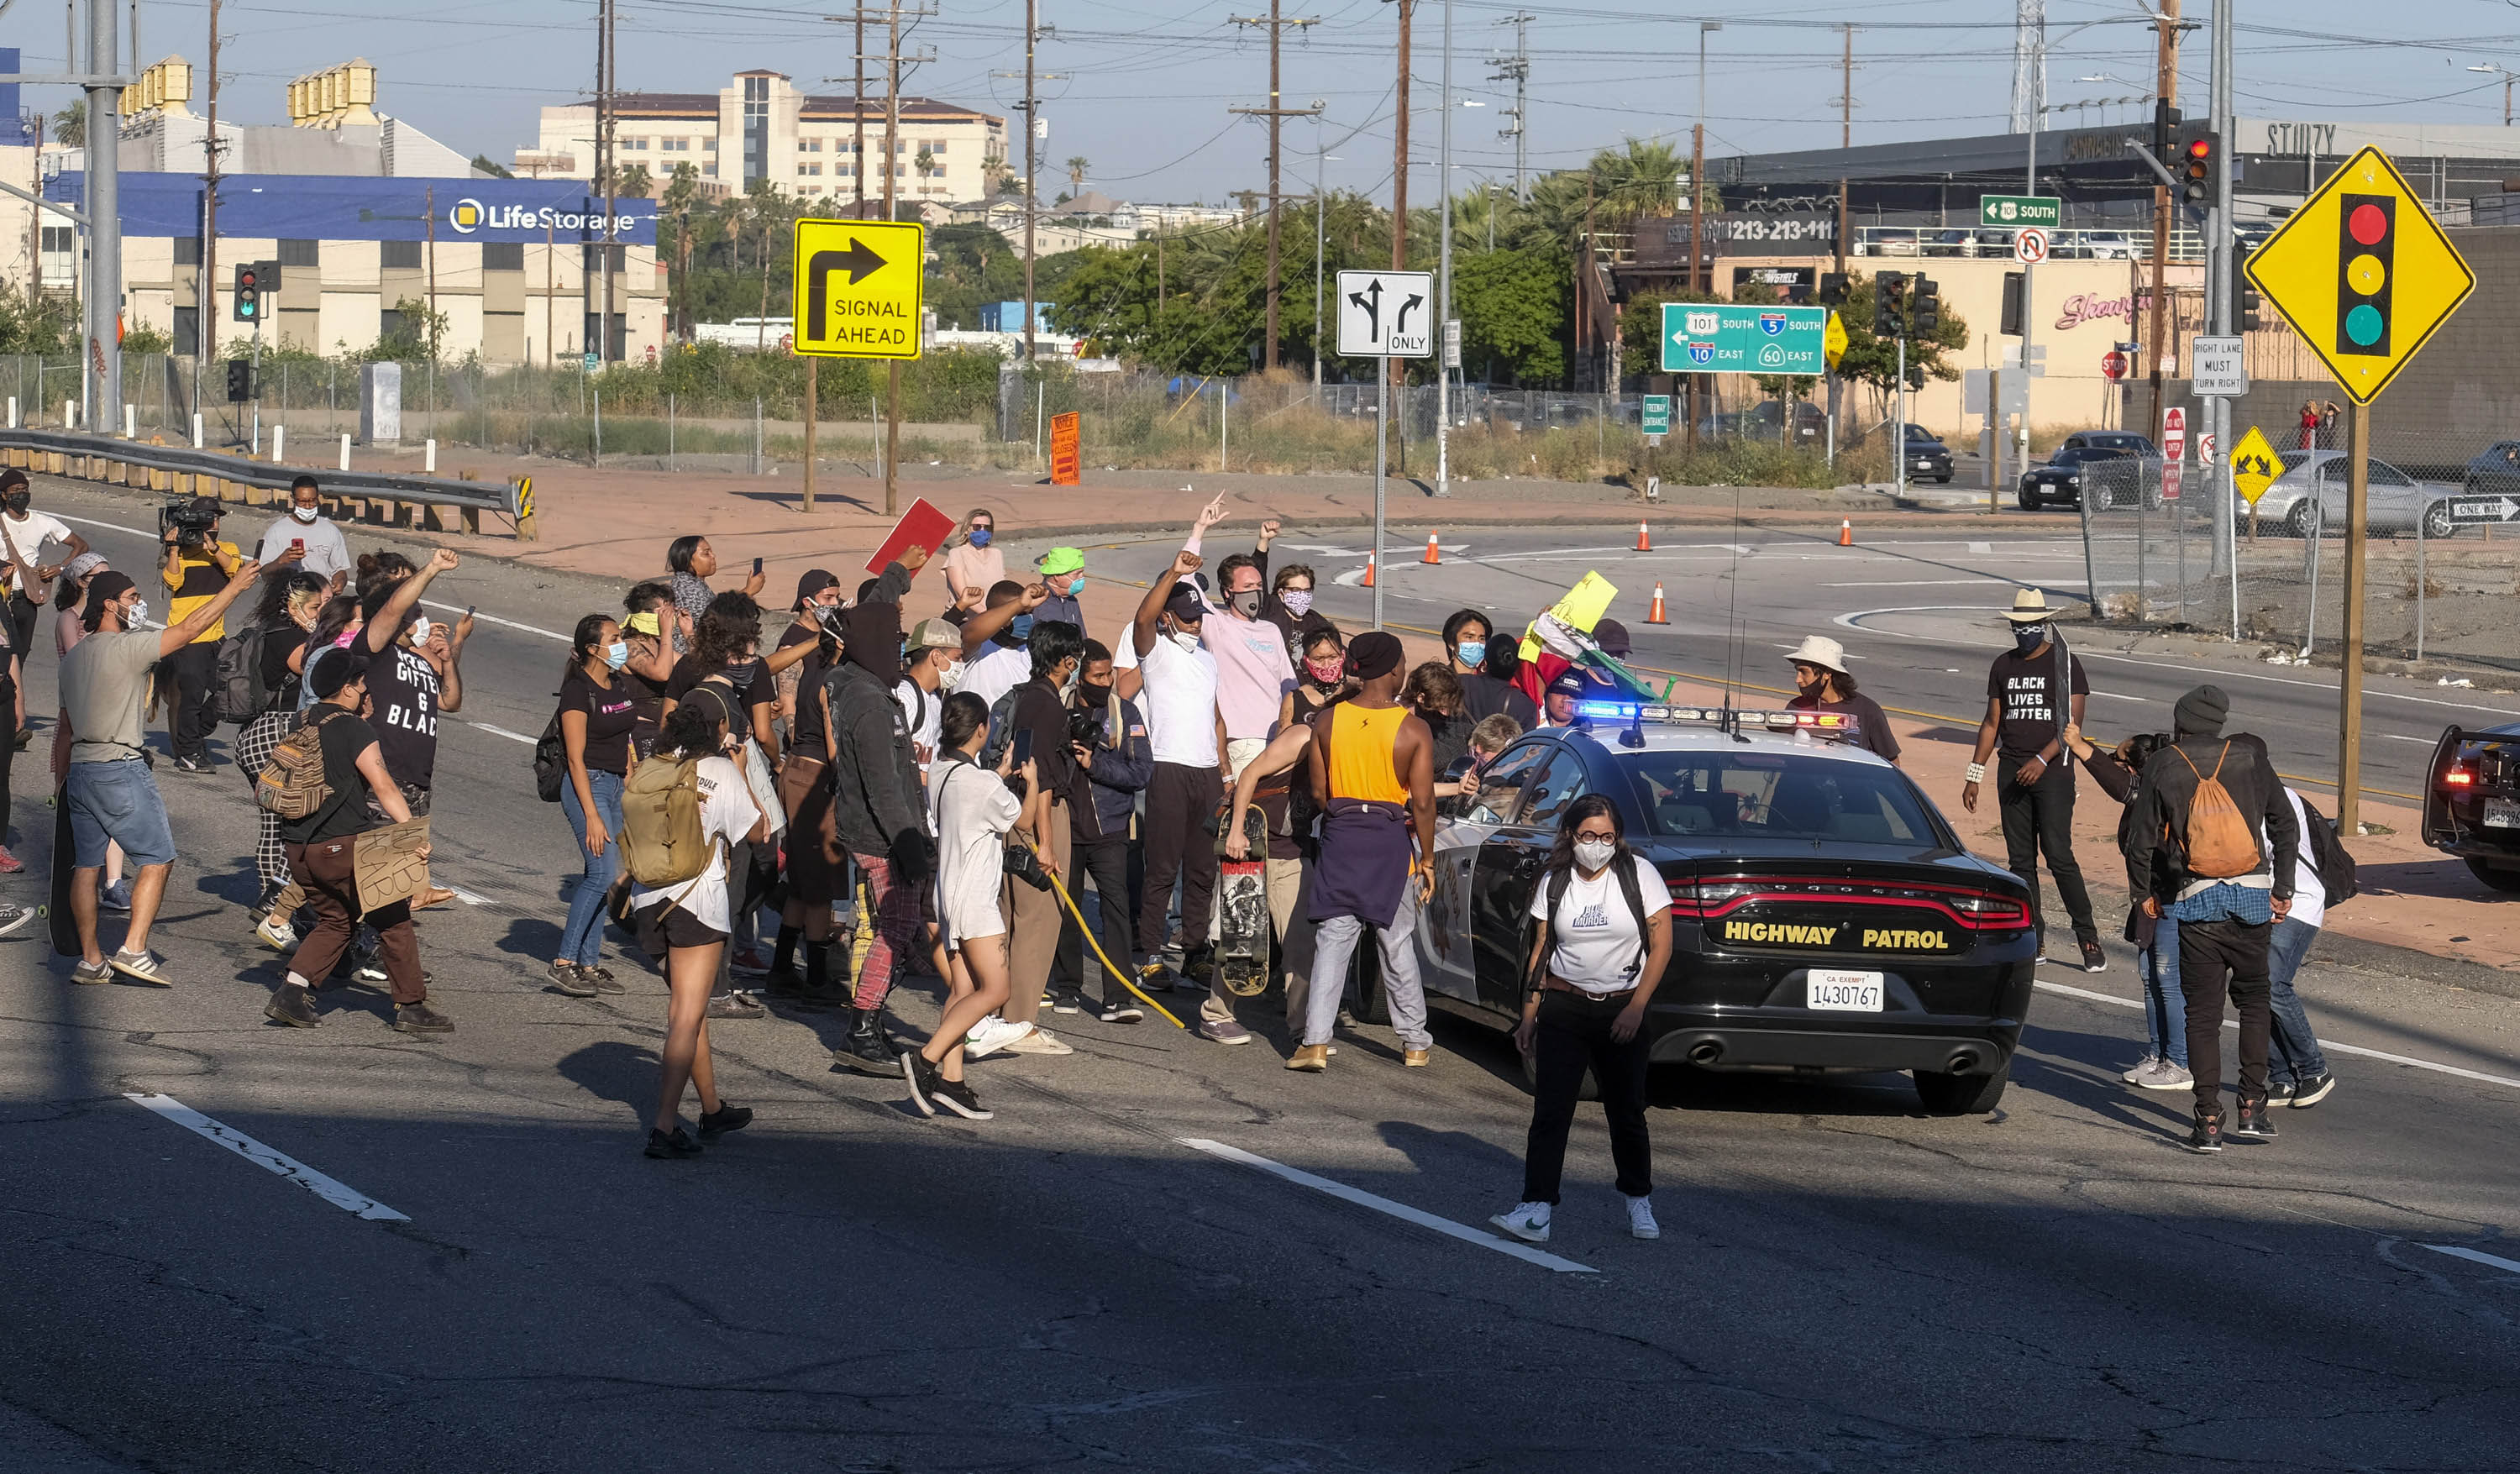 Demonstrators attack a California Highway Patrol cruiser in the Hollywood Freeway in Los Angeles on Wednesday, May 27.